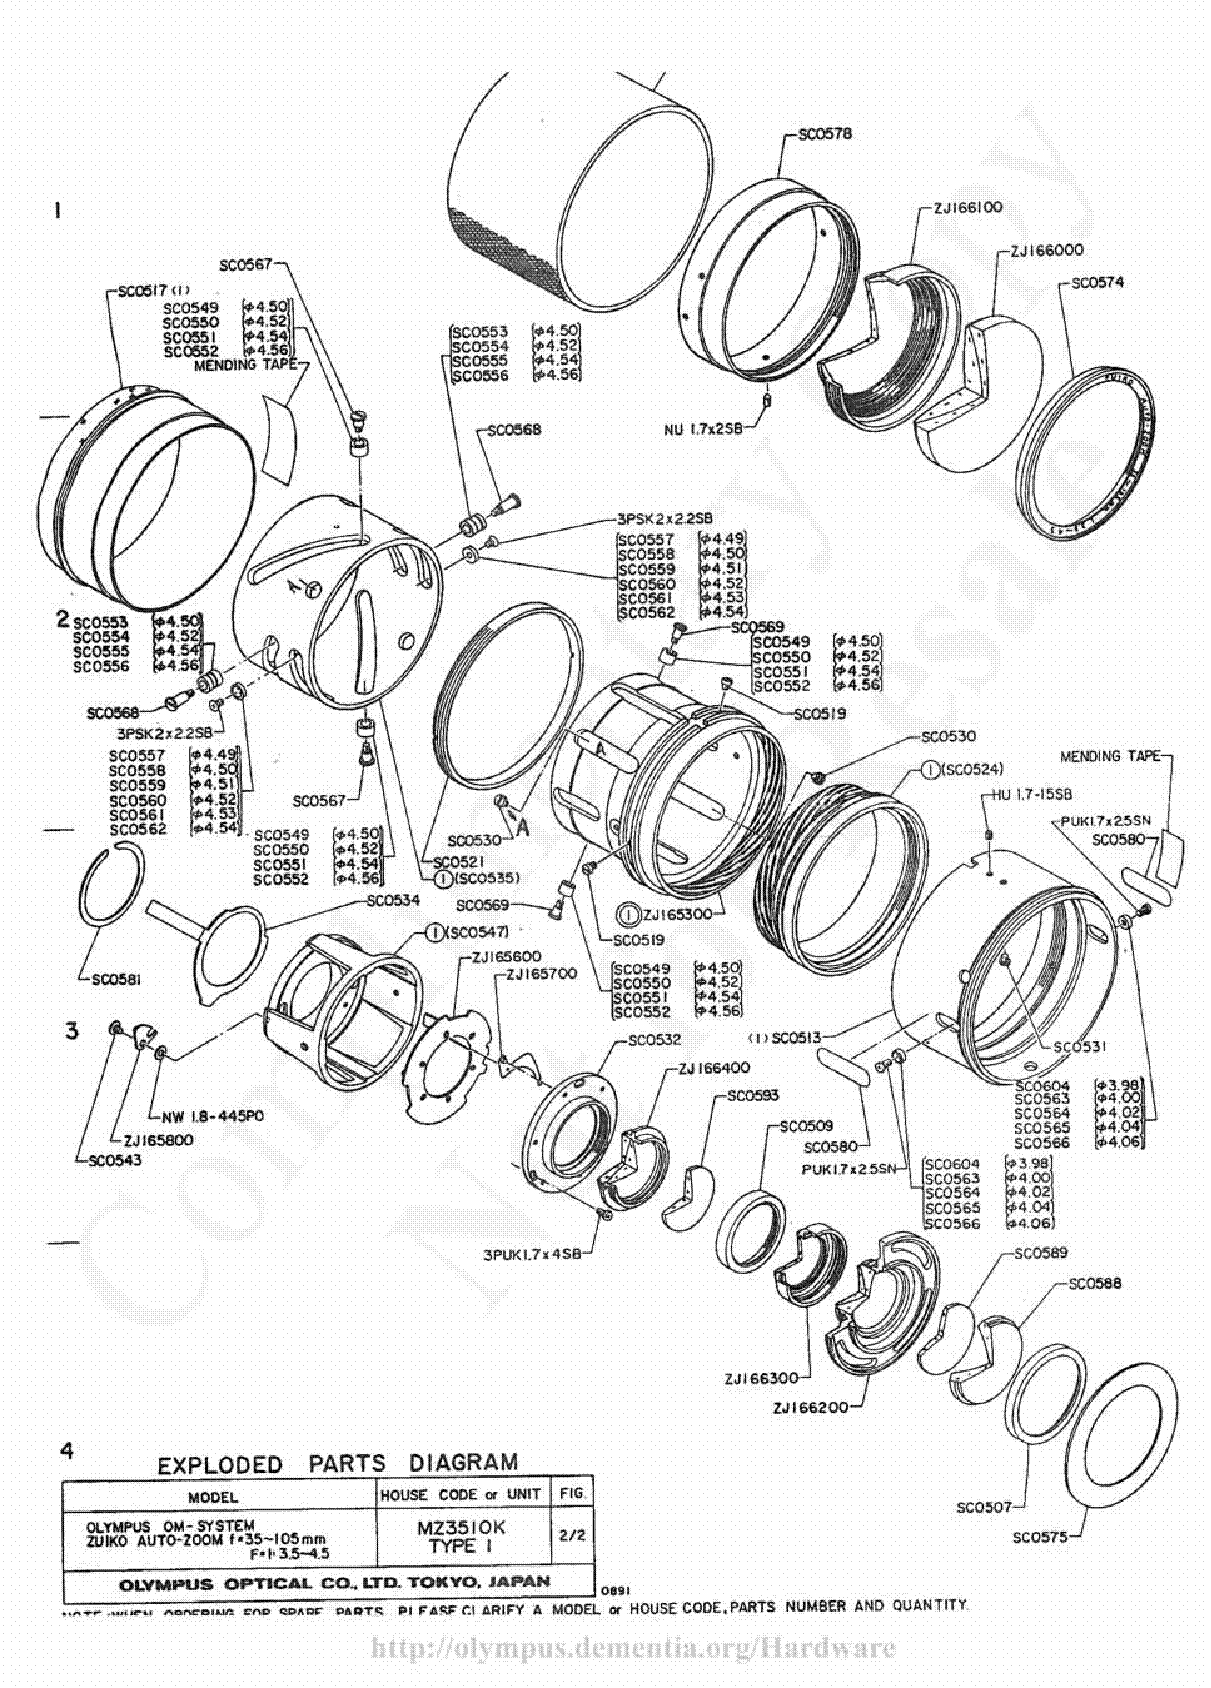 Olympus 35 105mm F3 5 4 5 Exploded Parts Diagram Service